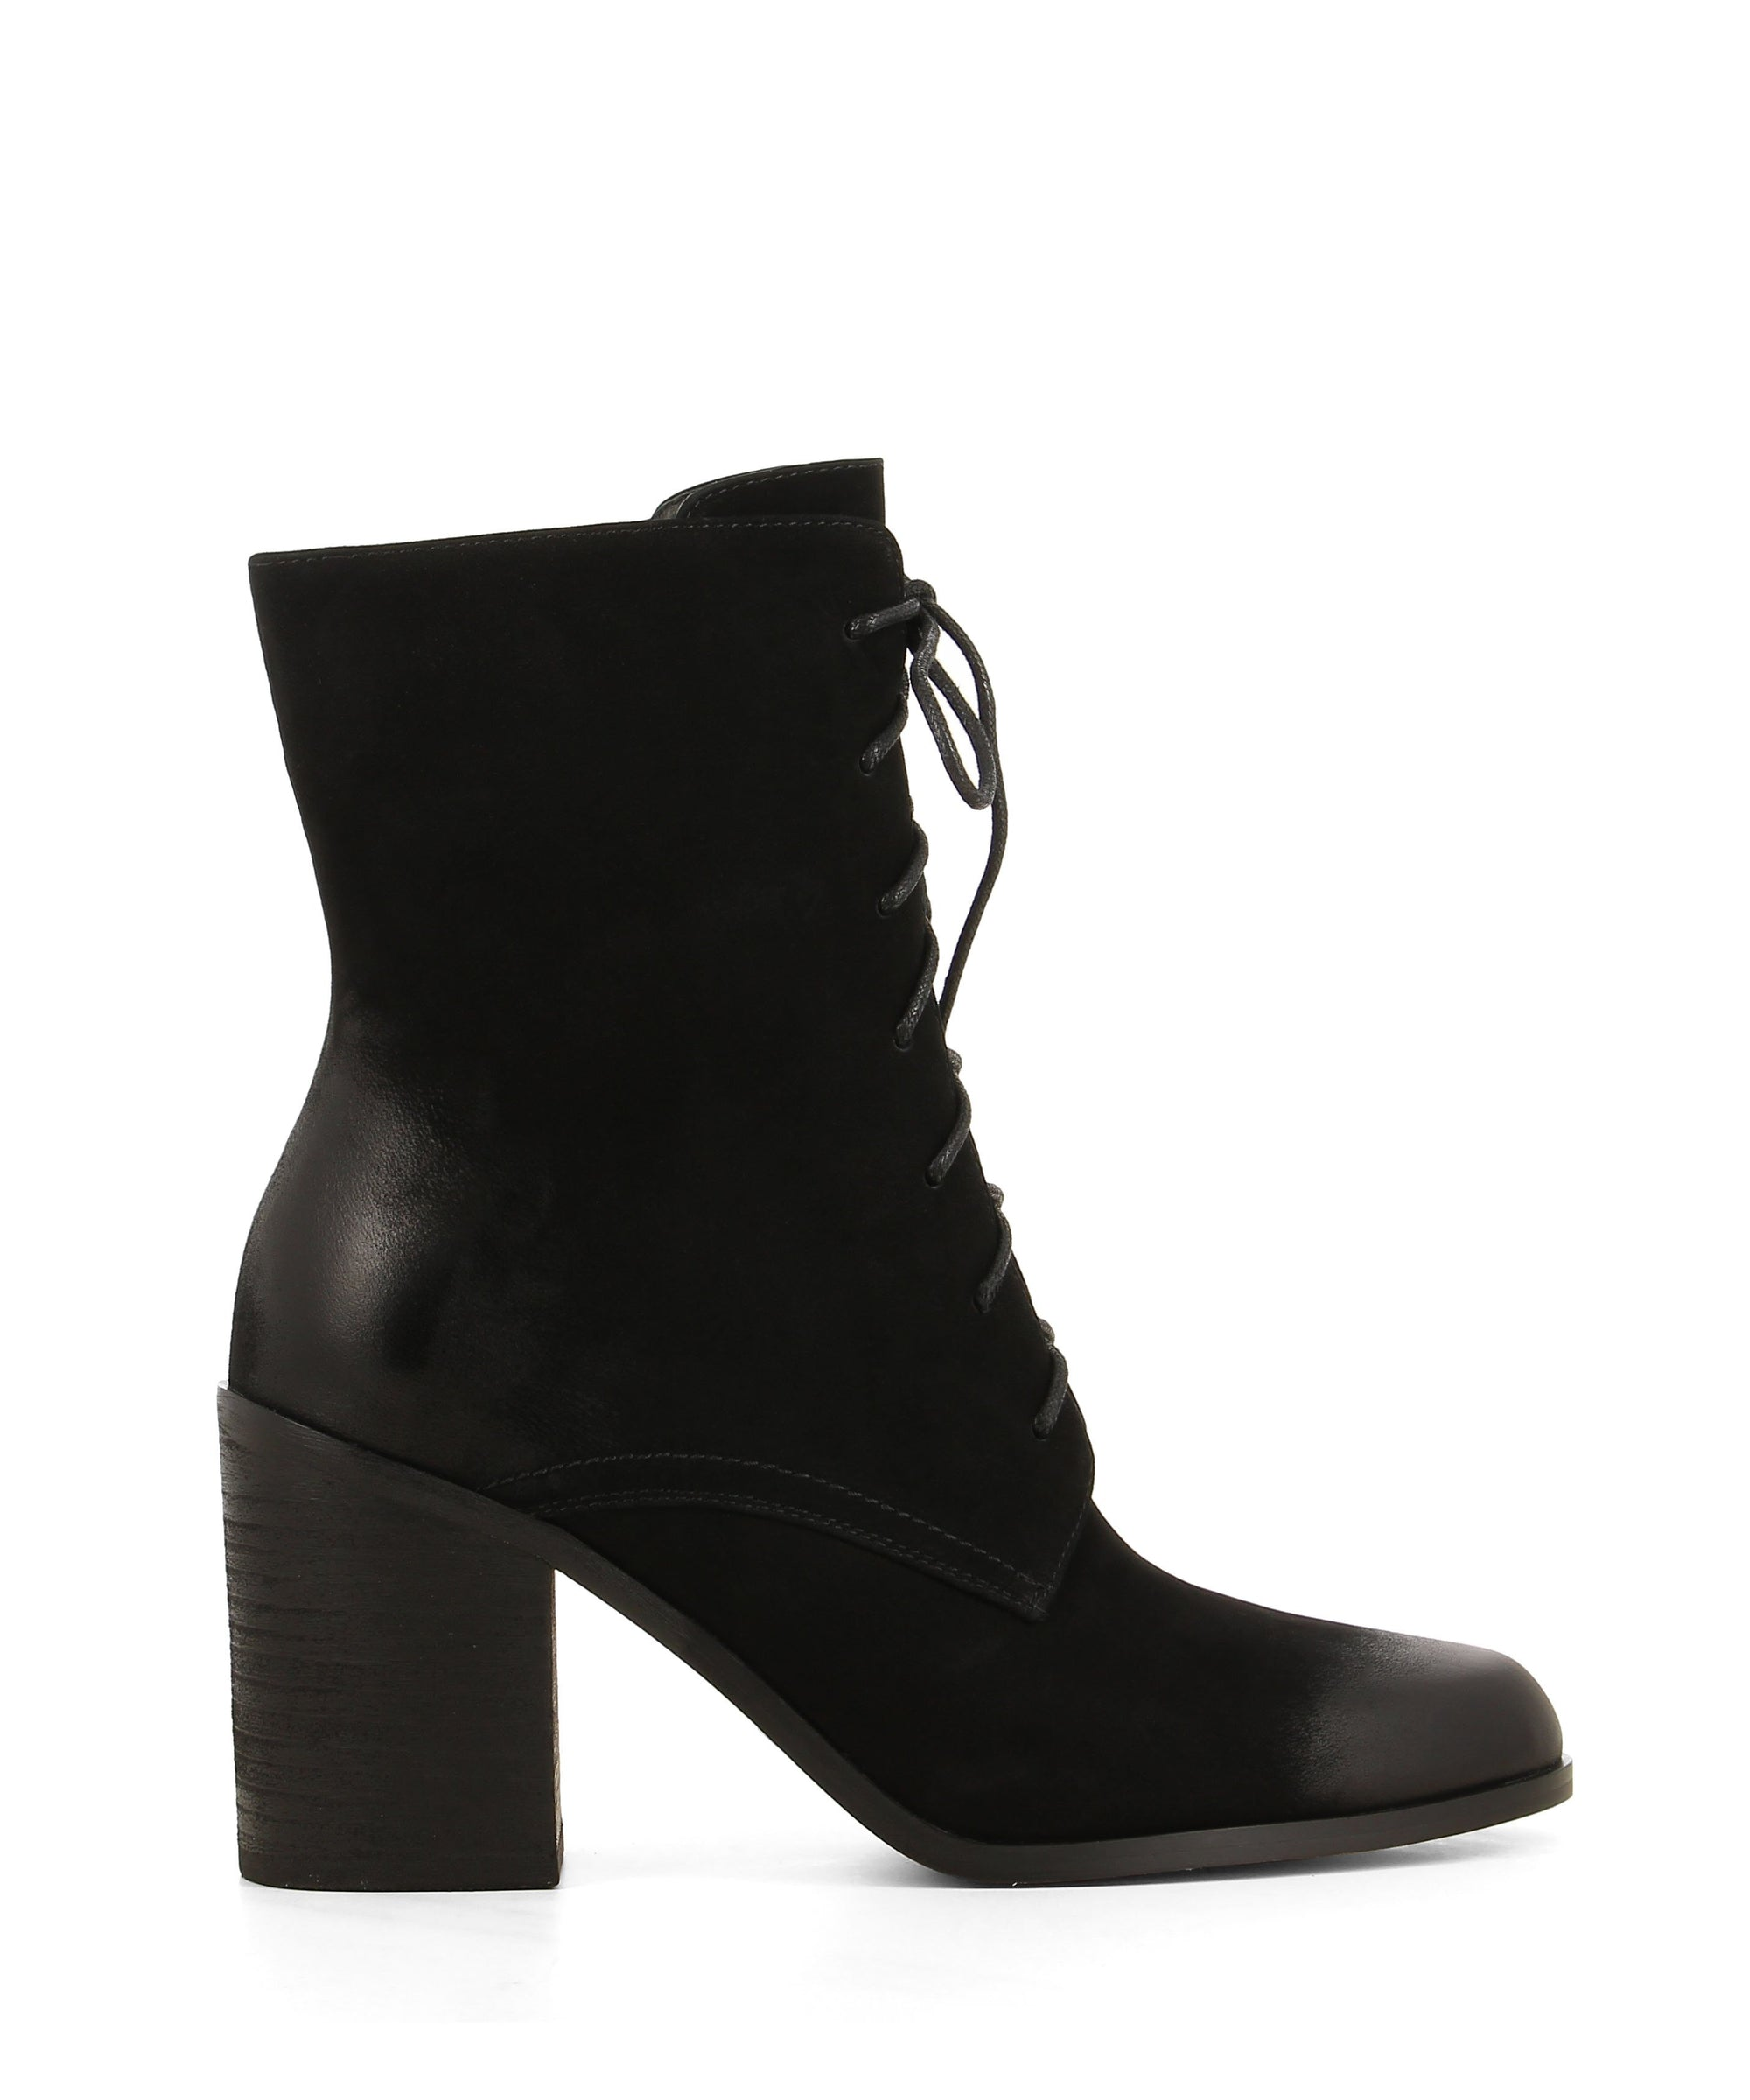 Black nubuck heeled ankle boots featuring lace up fastenings, a wooden block heel and polished almond toe by 2 Baia Vista.